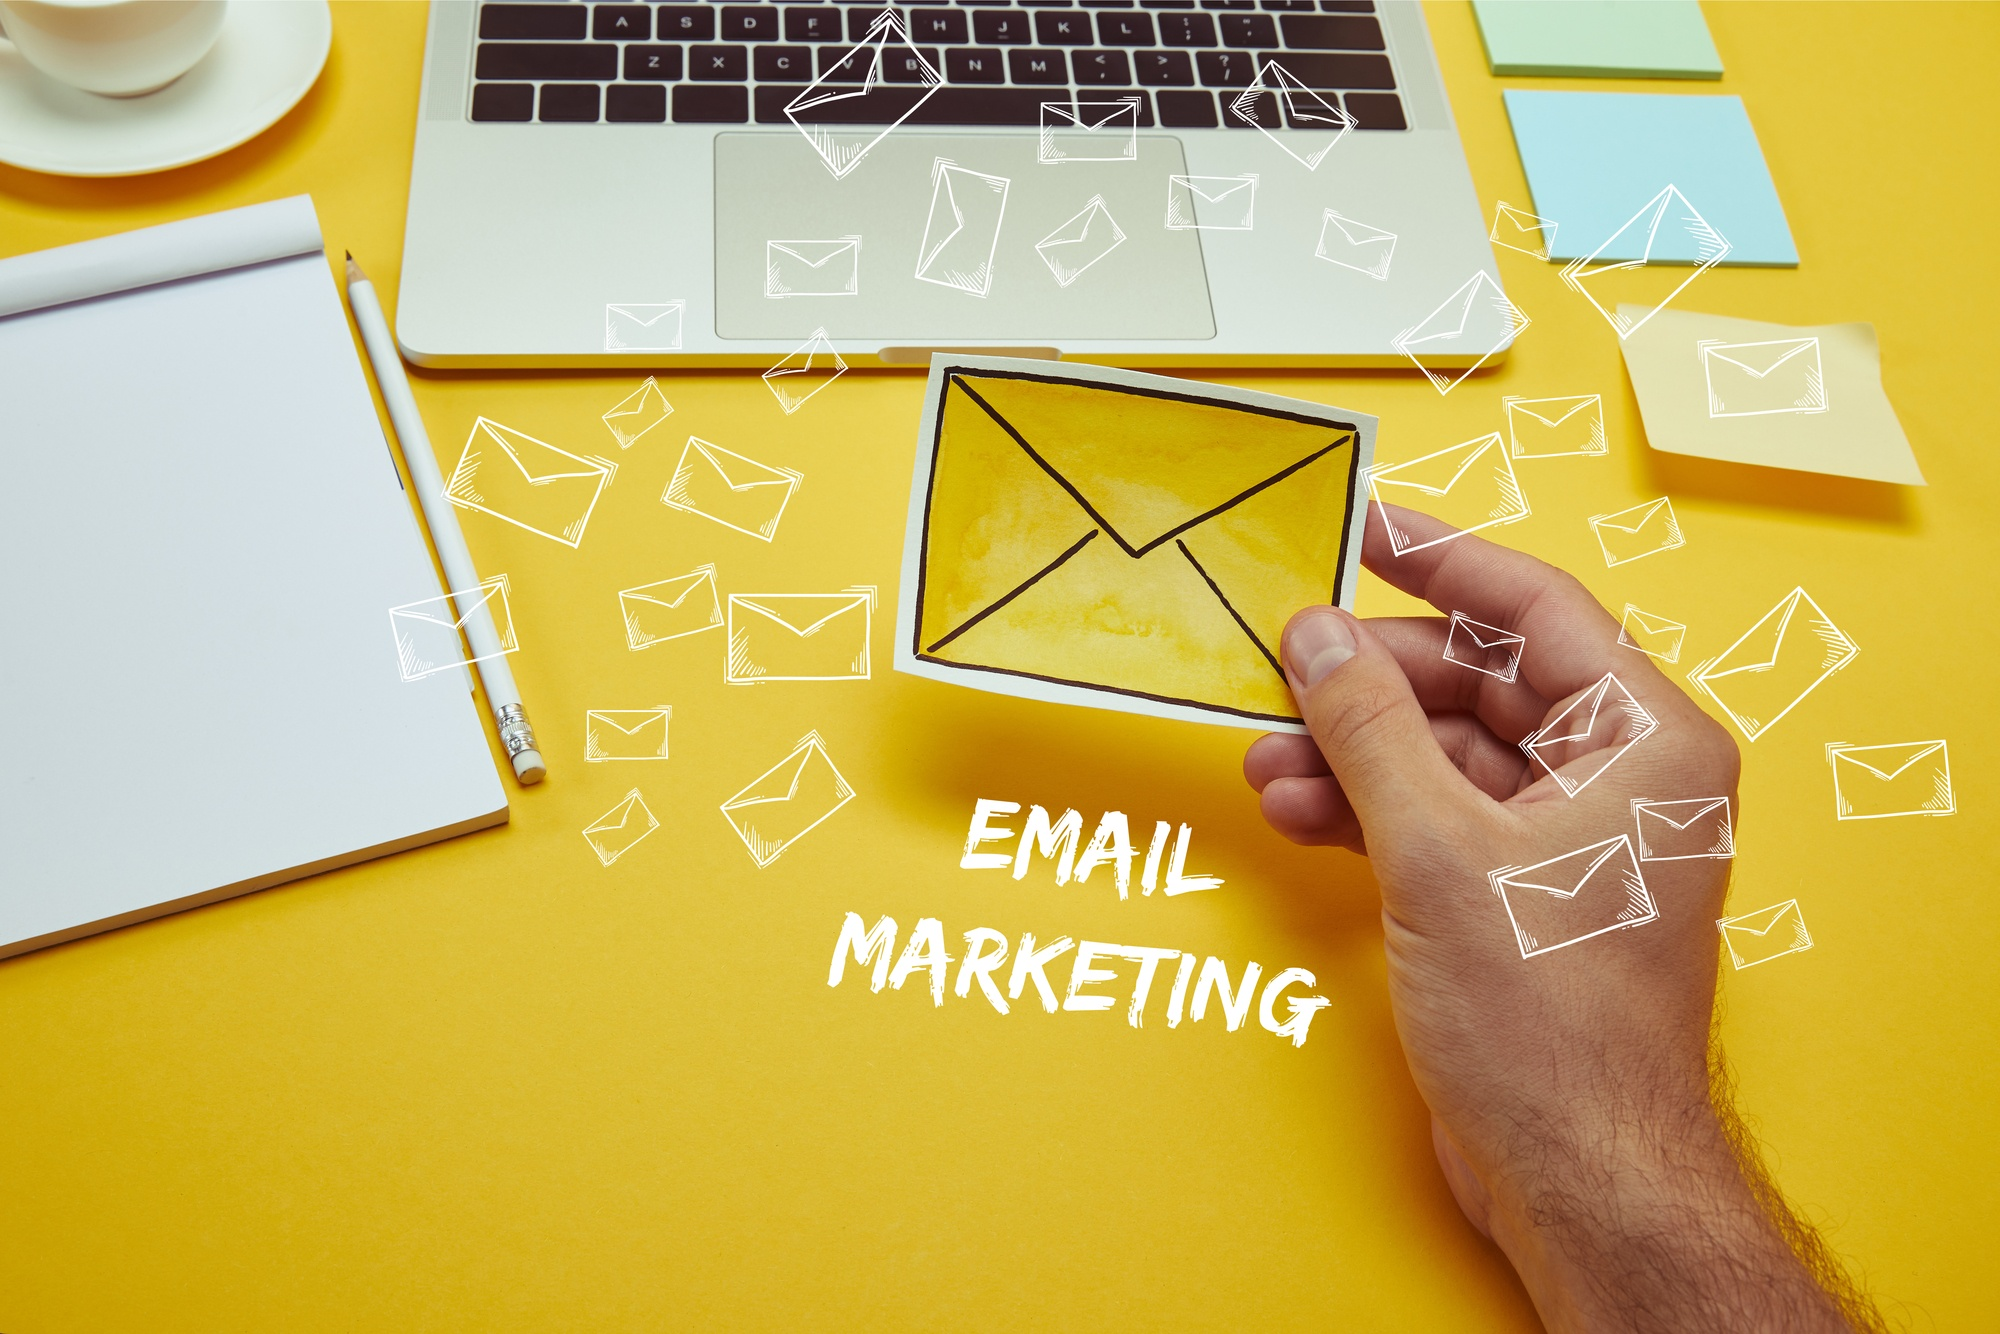 How to use Email marketing wisely to increase your sales